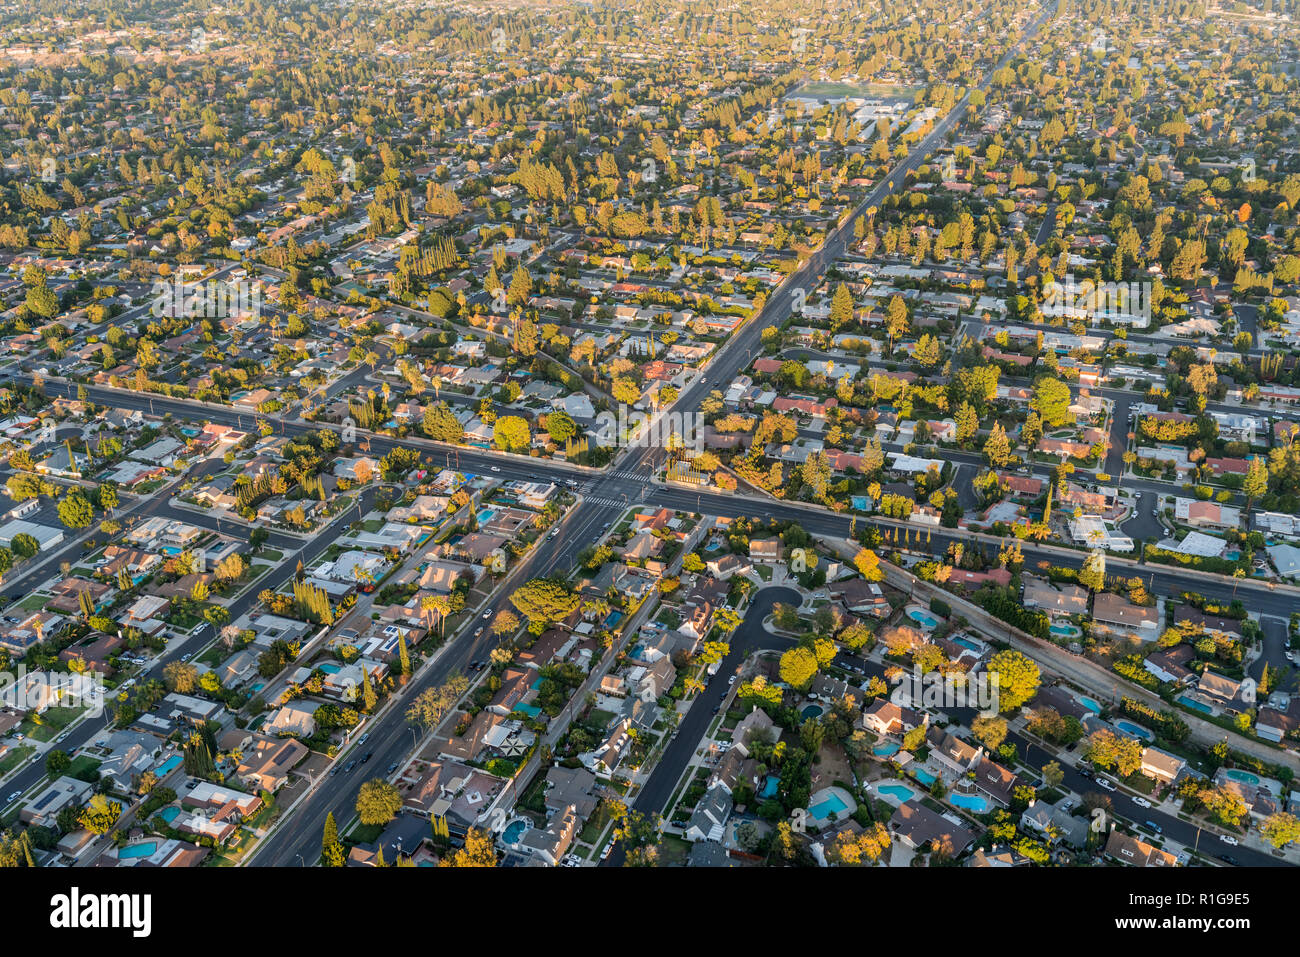 Aerial View Of Streets And Homes Near Lassen St And Corbin Ave In